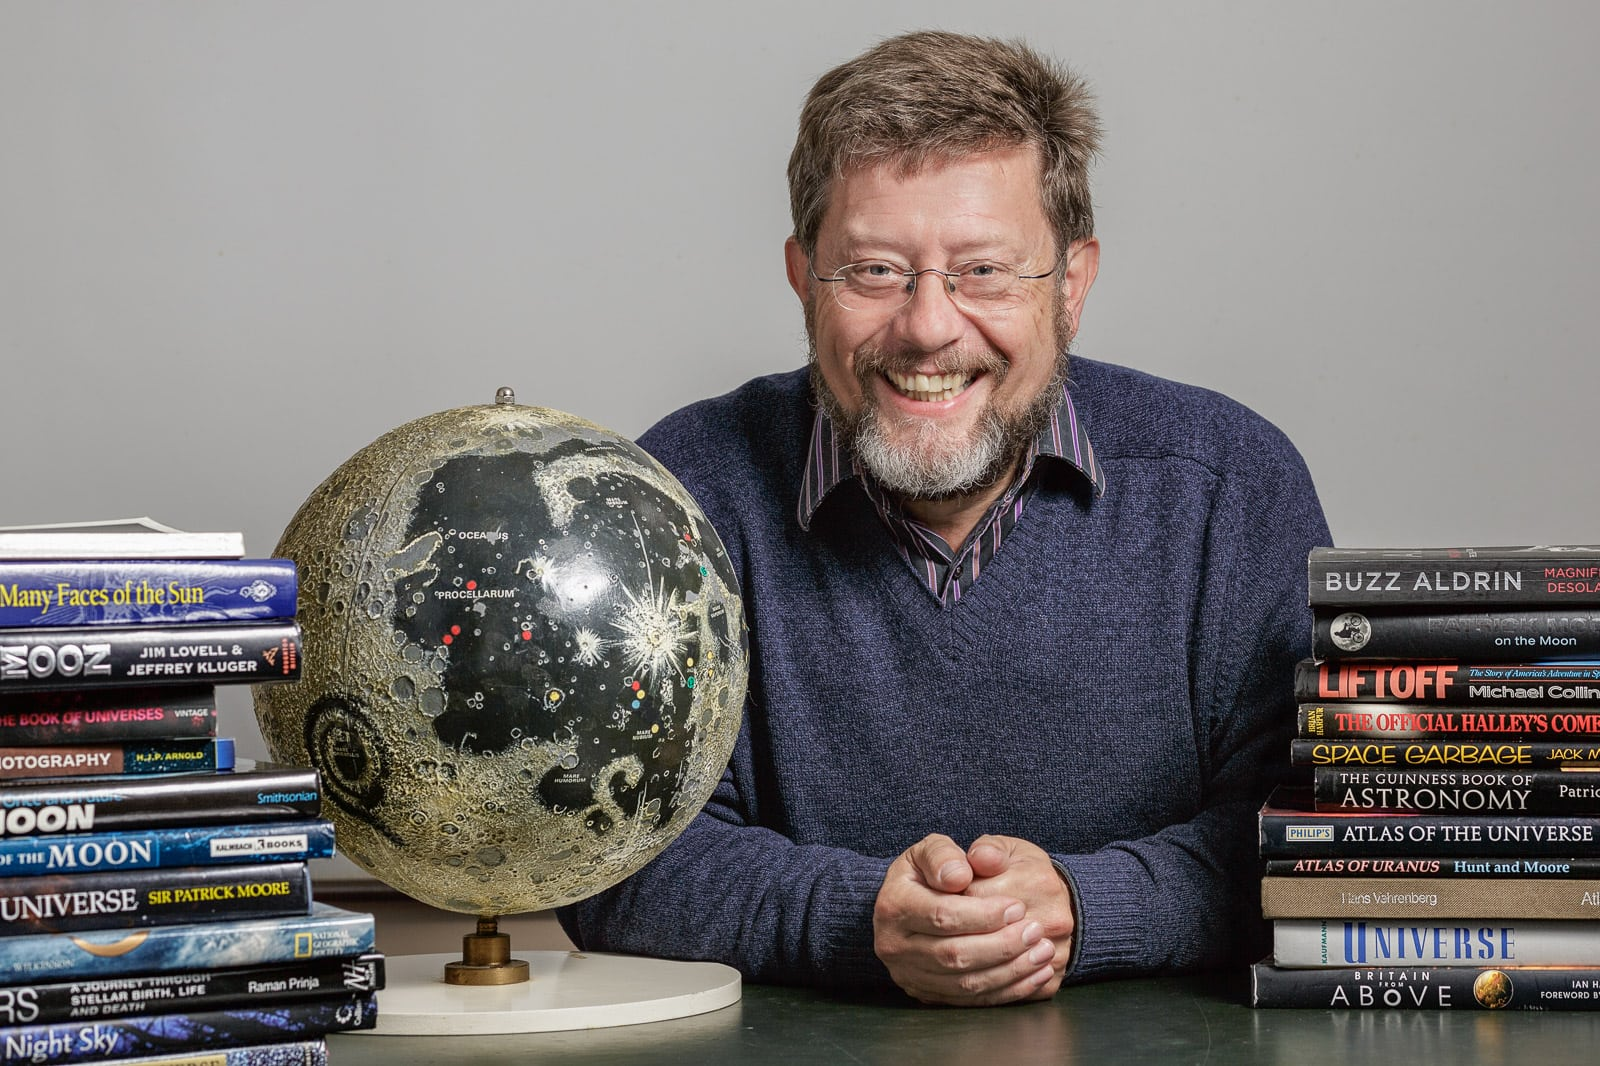 Informal portrait of a head astrologer sat a desk with a globe and books